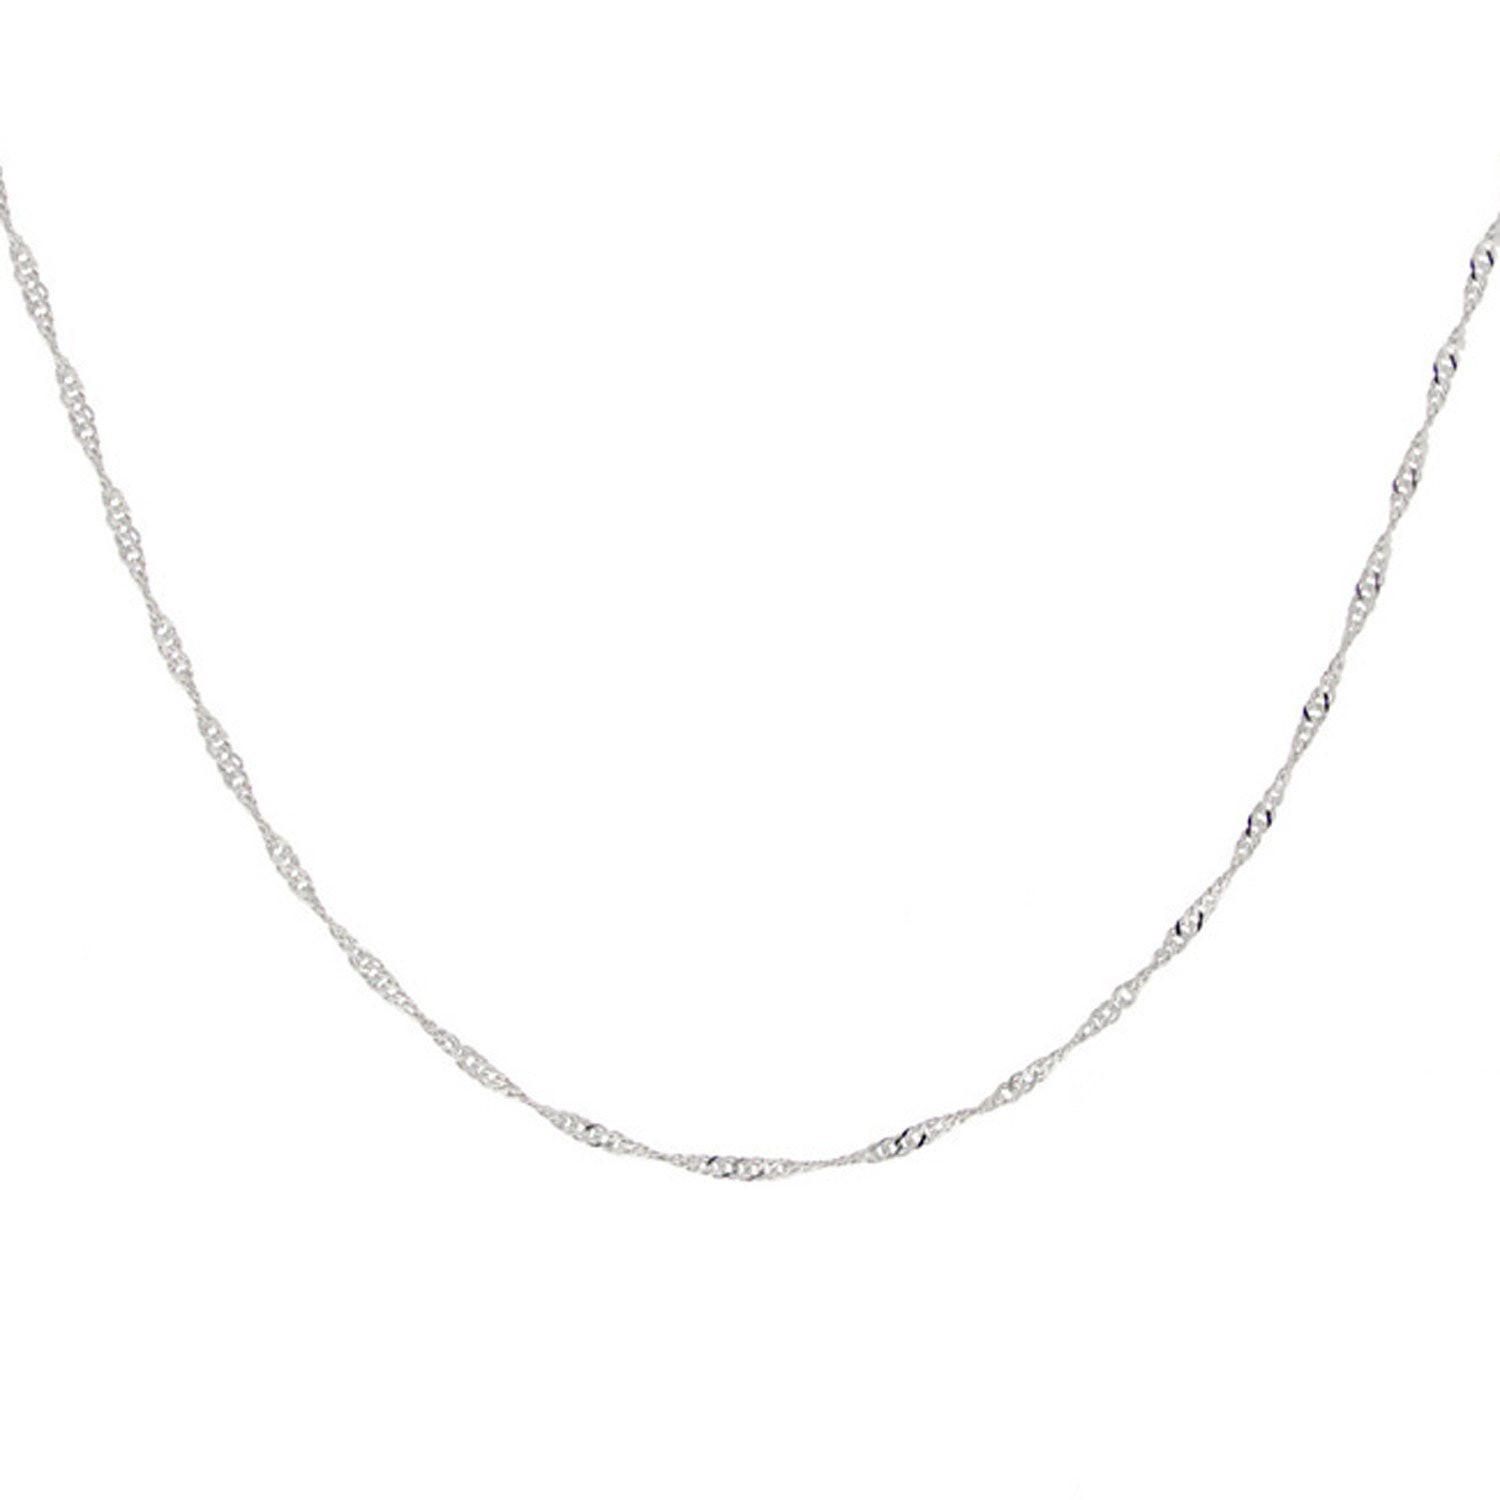 Sterling Silver Italian Chain With Singapore Design Necklace - 24 Inches